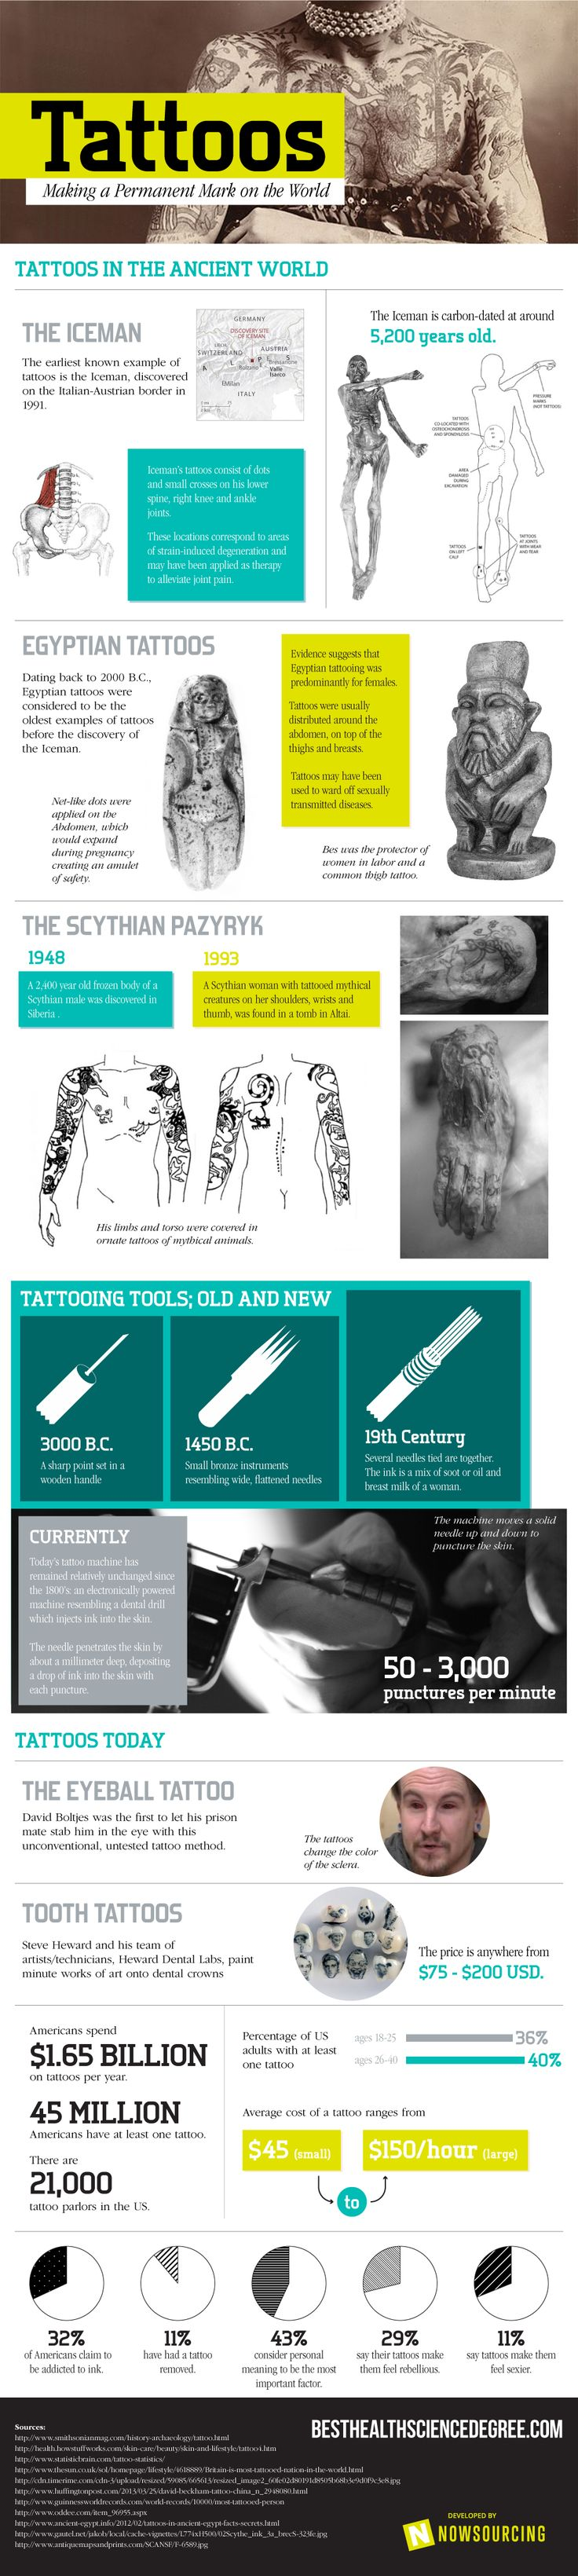 Tattoos: Making a Permanent Mark on the World